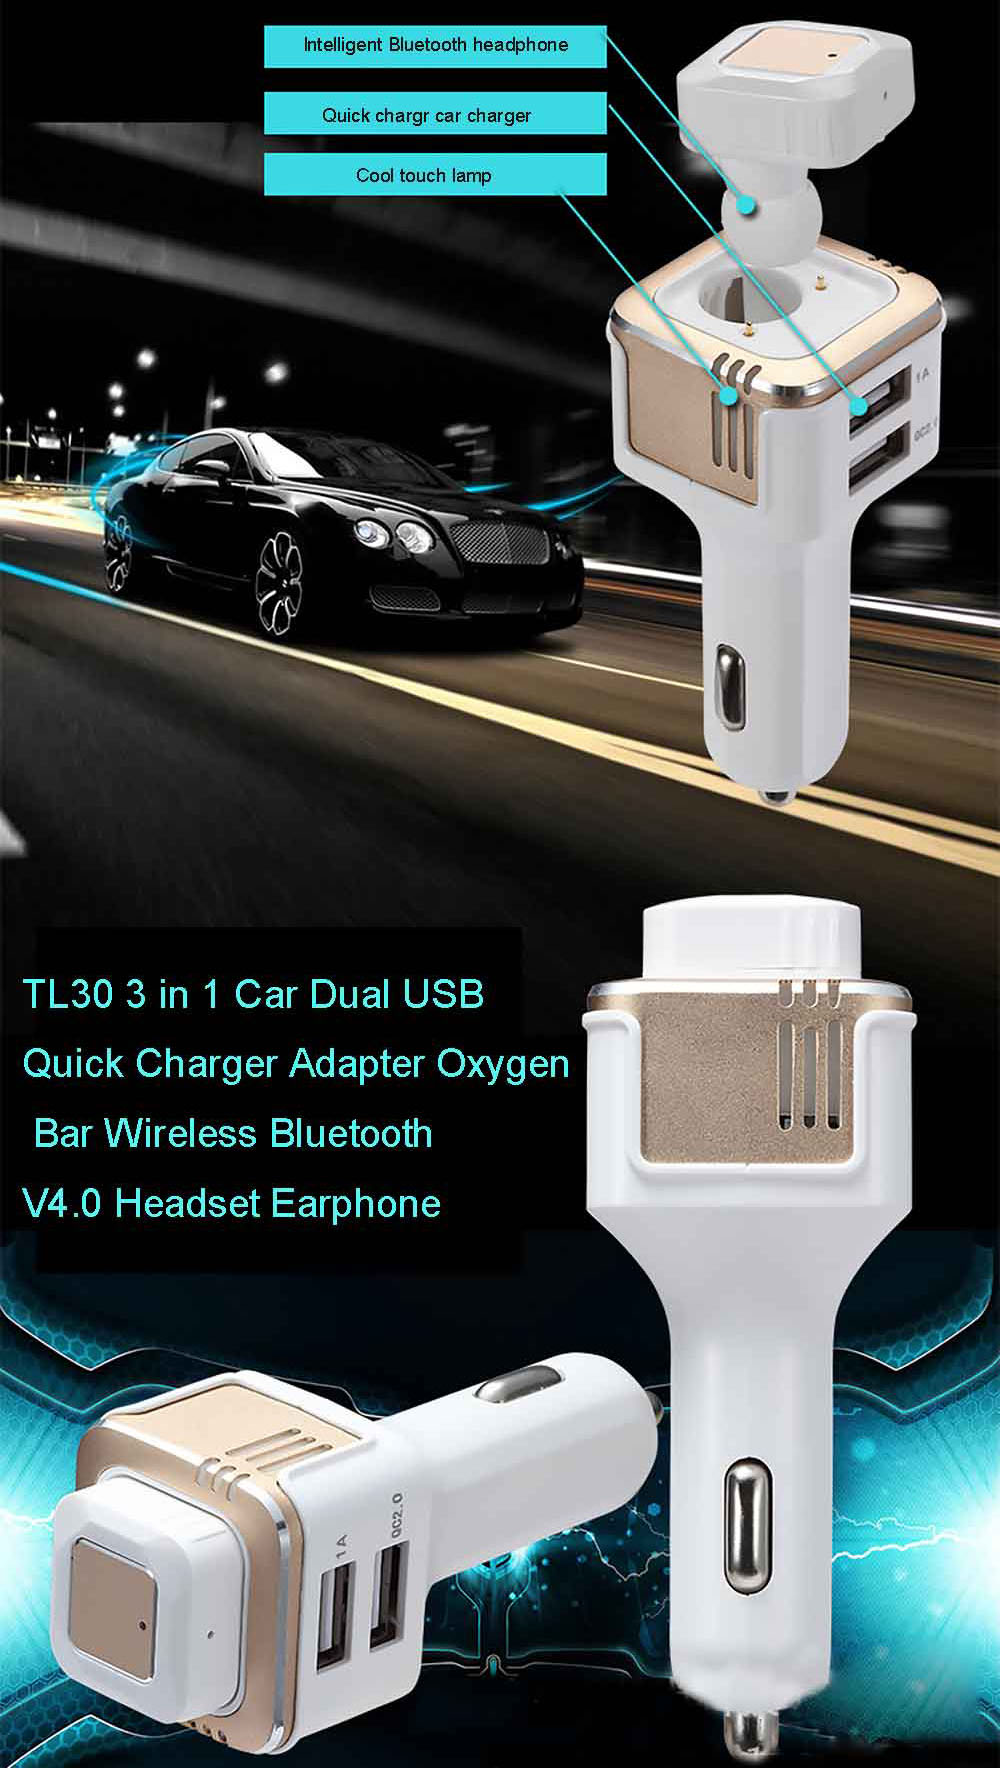 TL20 3 in 1 Car Dual USB Quick Charger Adapter Oxygen Bar Wireless Bluetooth V4.0 Headset Earphone